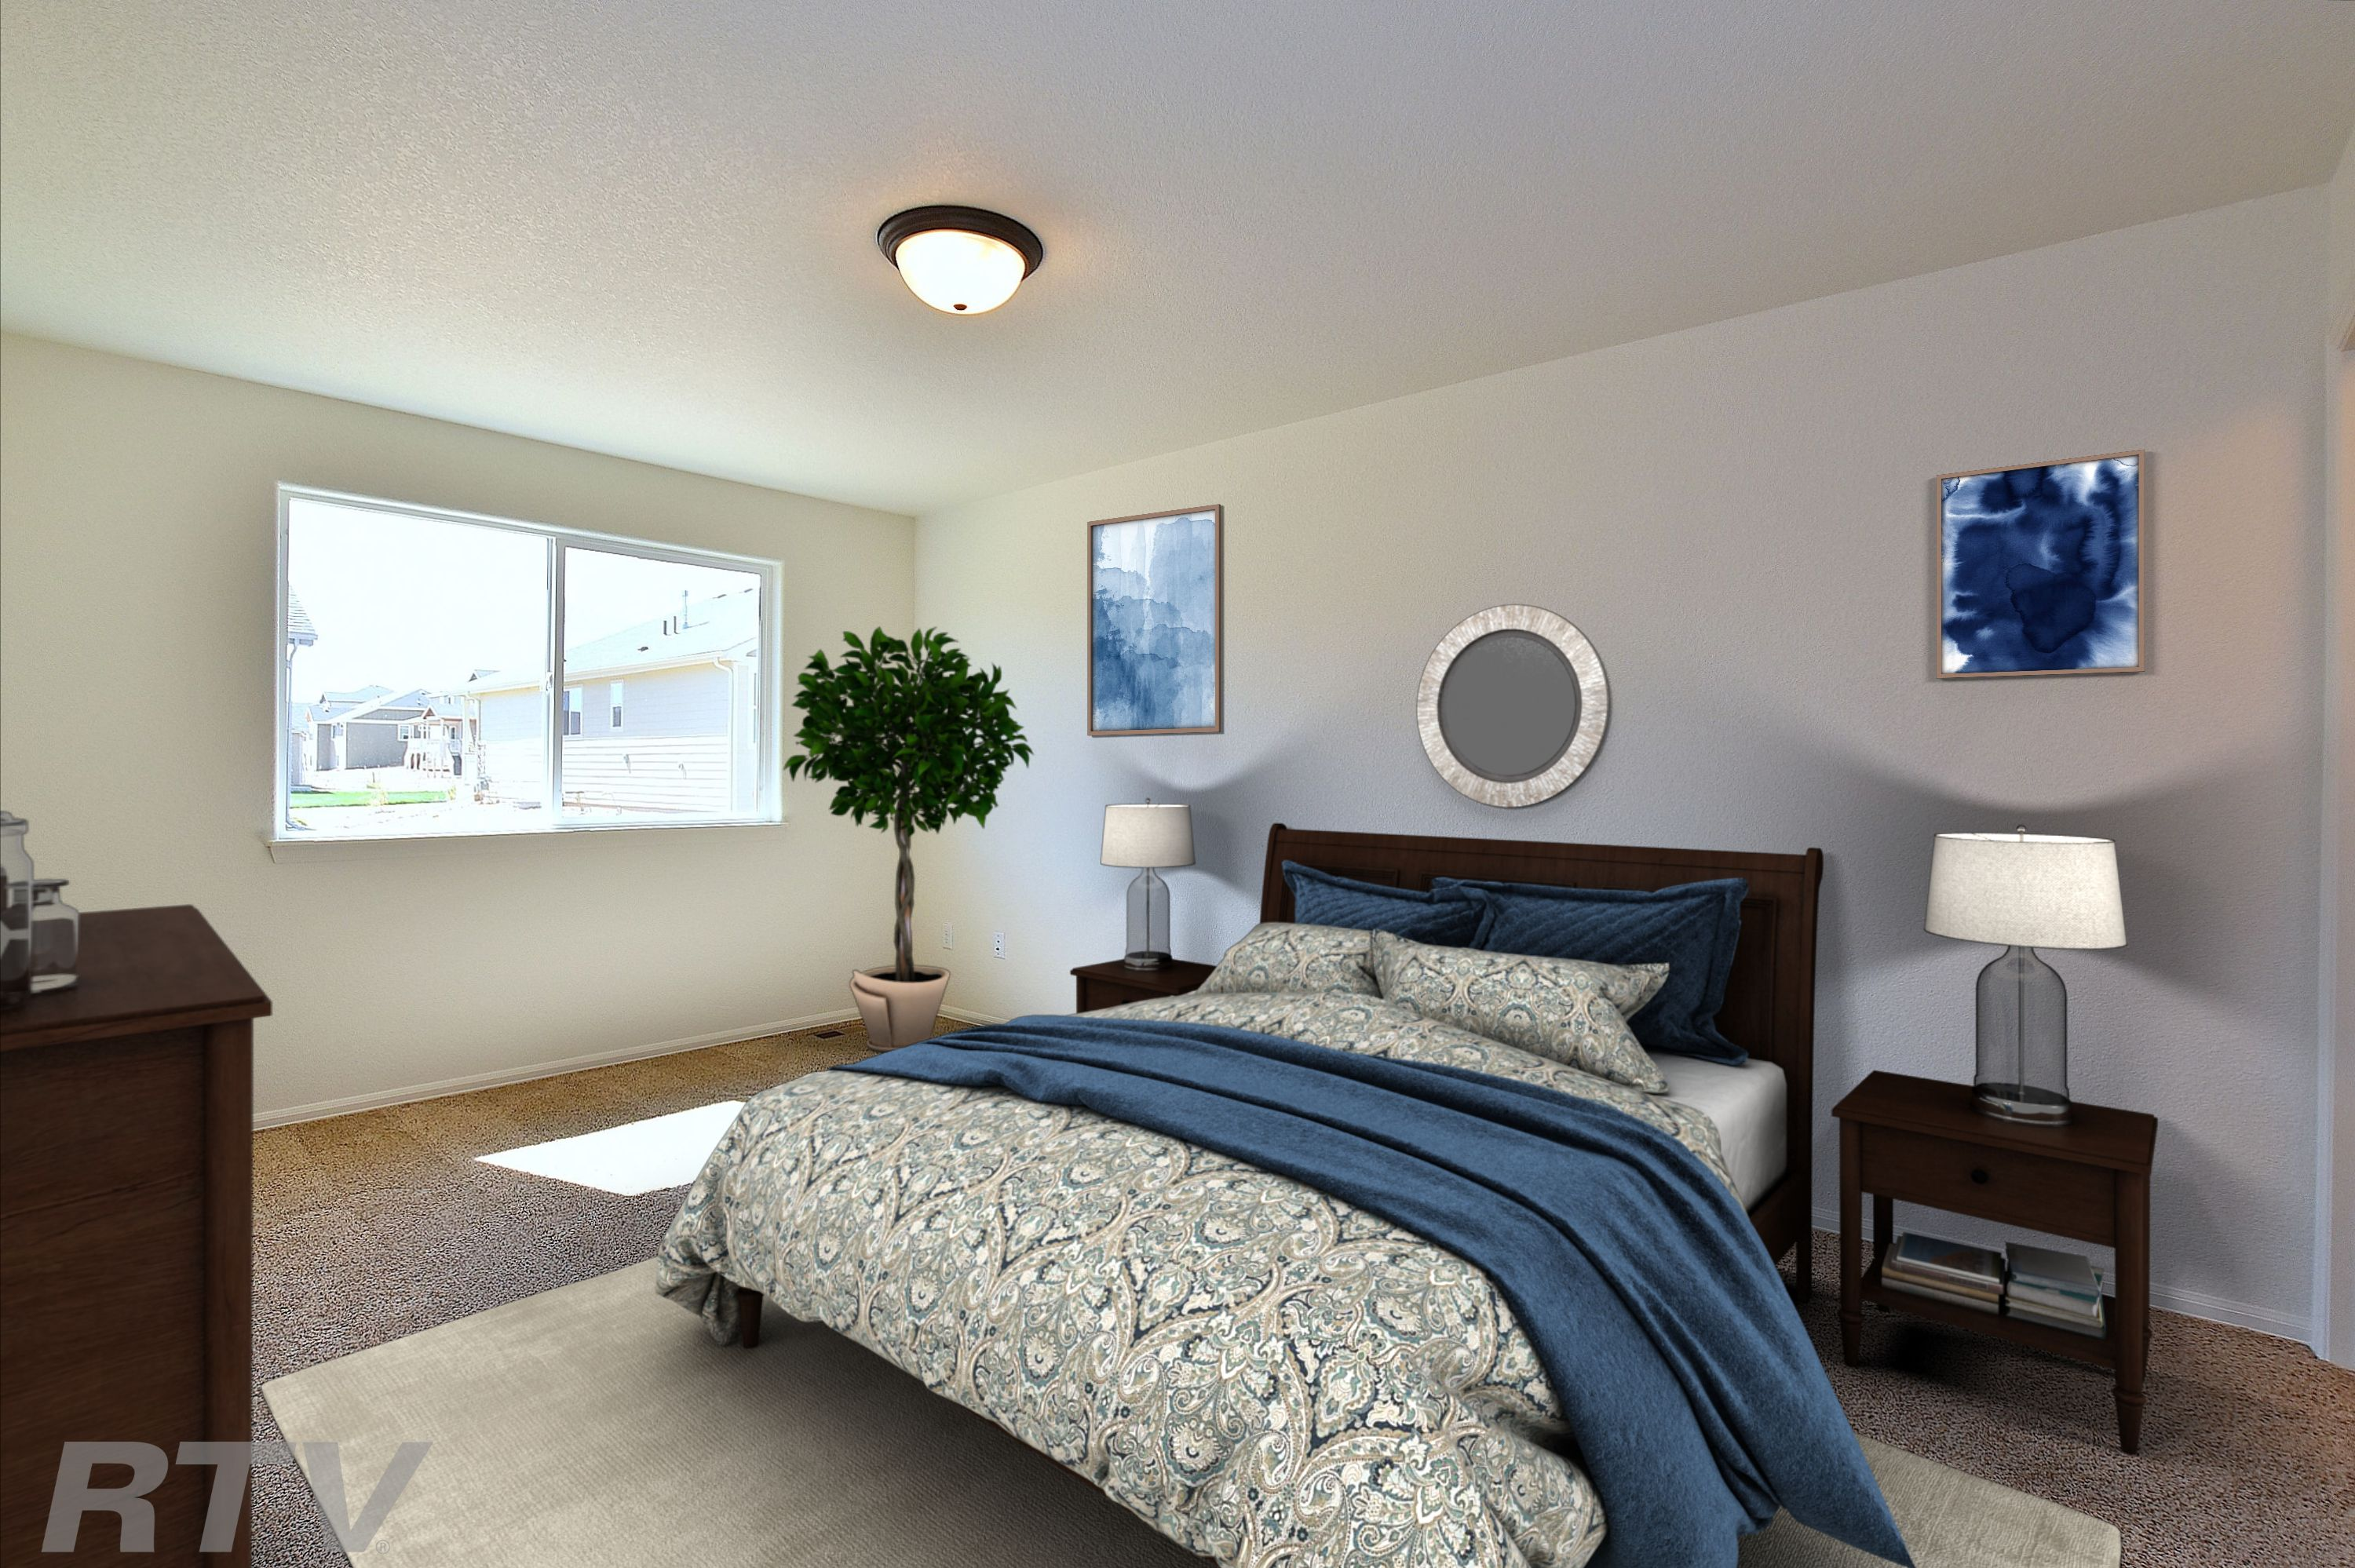 Bedroom featured in the Alaska By Journey Homes in Greeley, CO